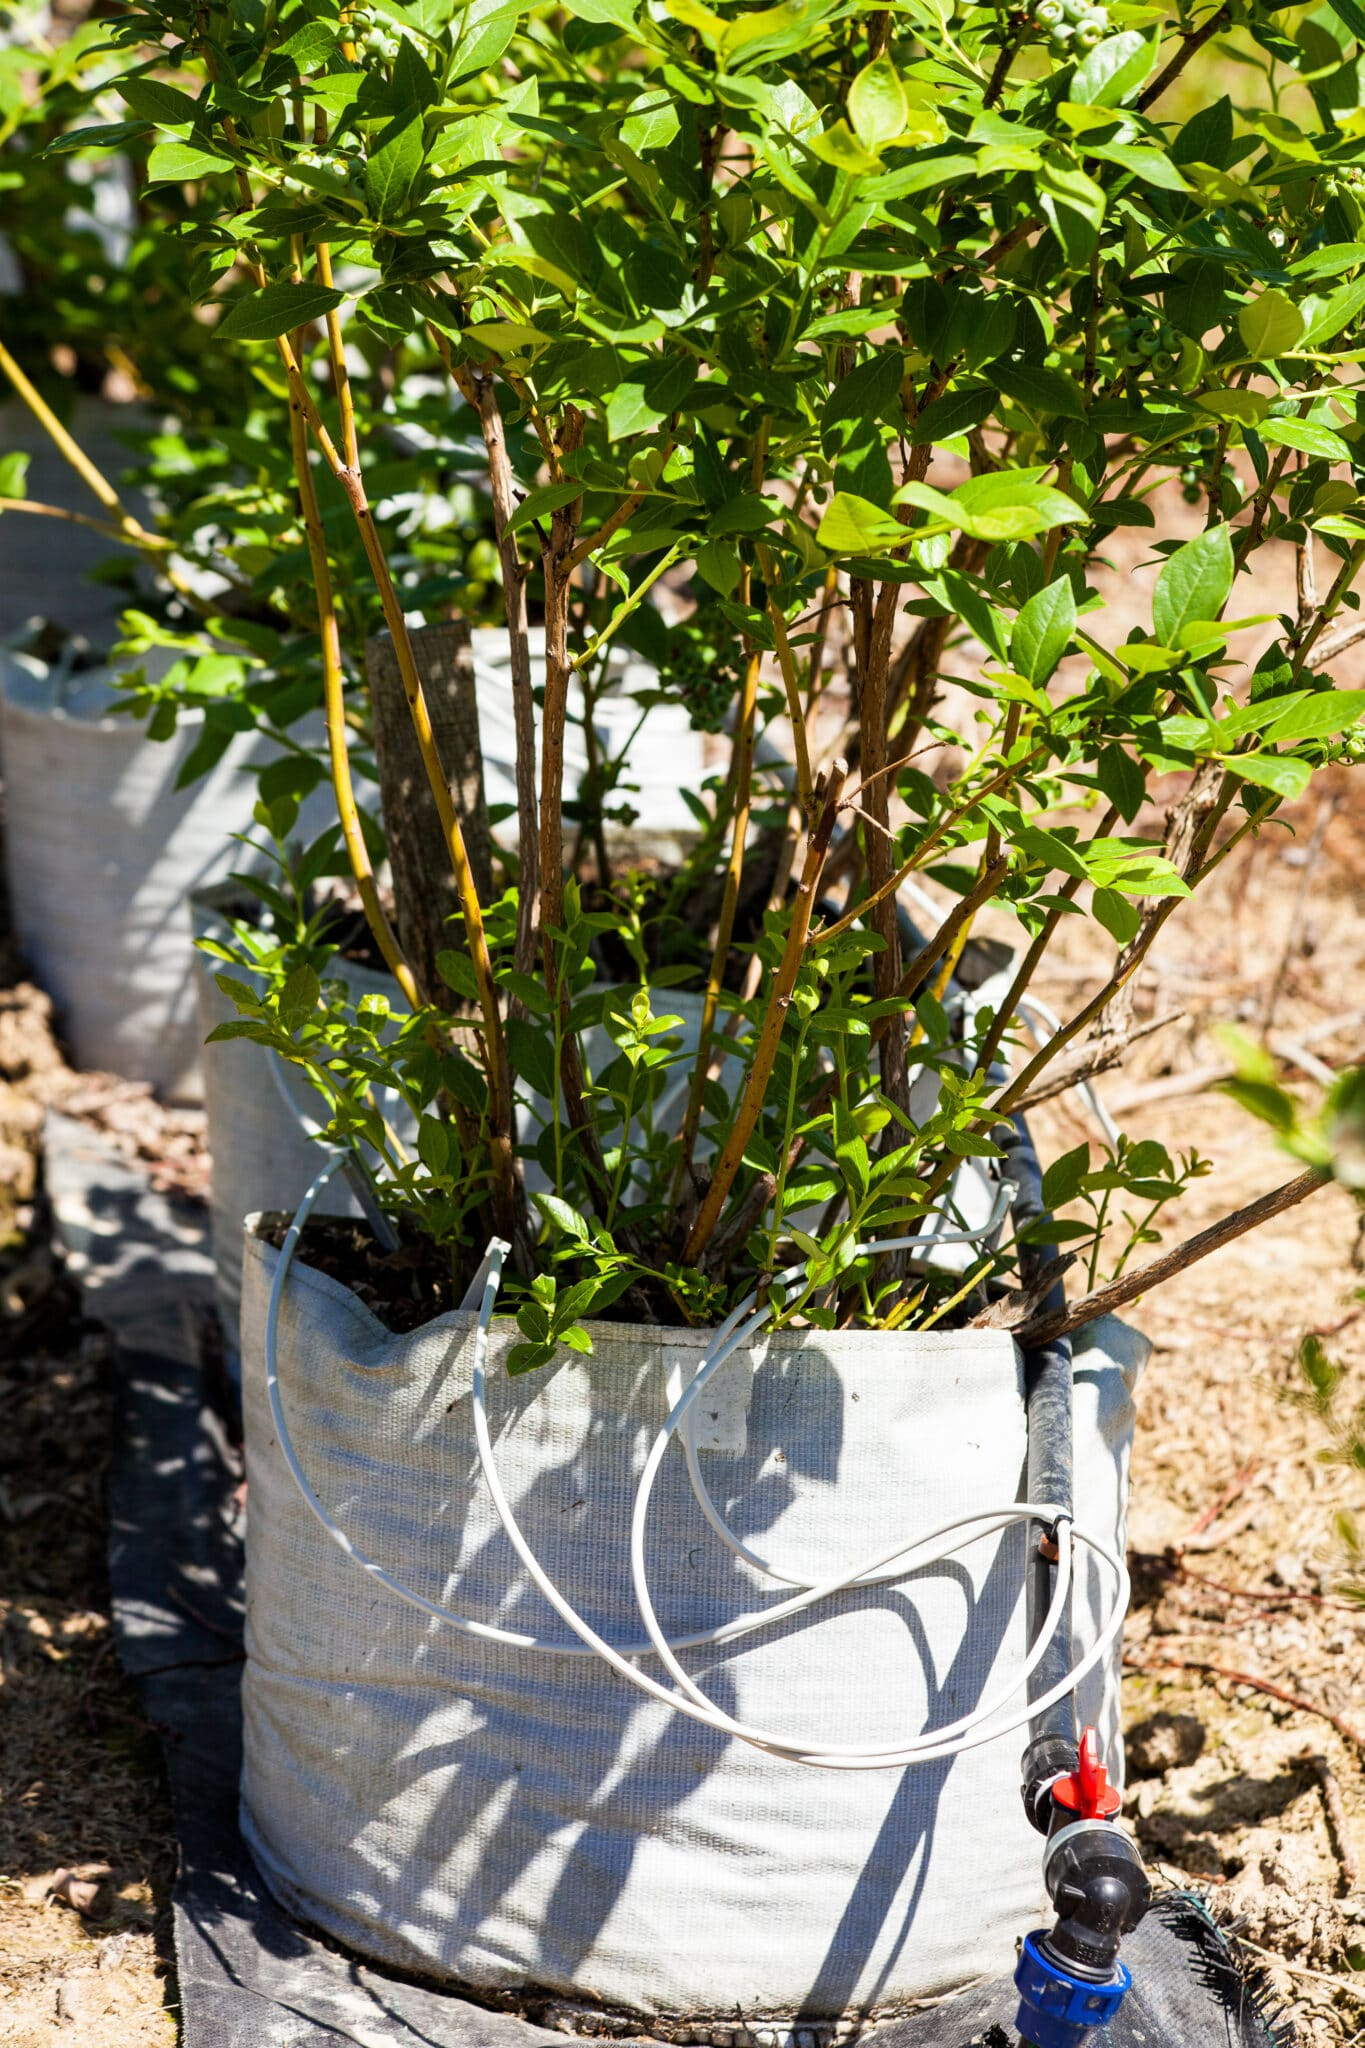 growing blueberries in containers with drip hoses